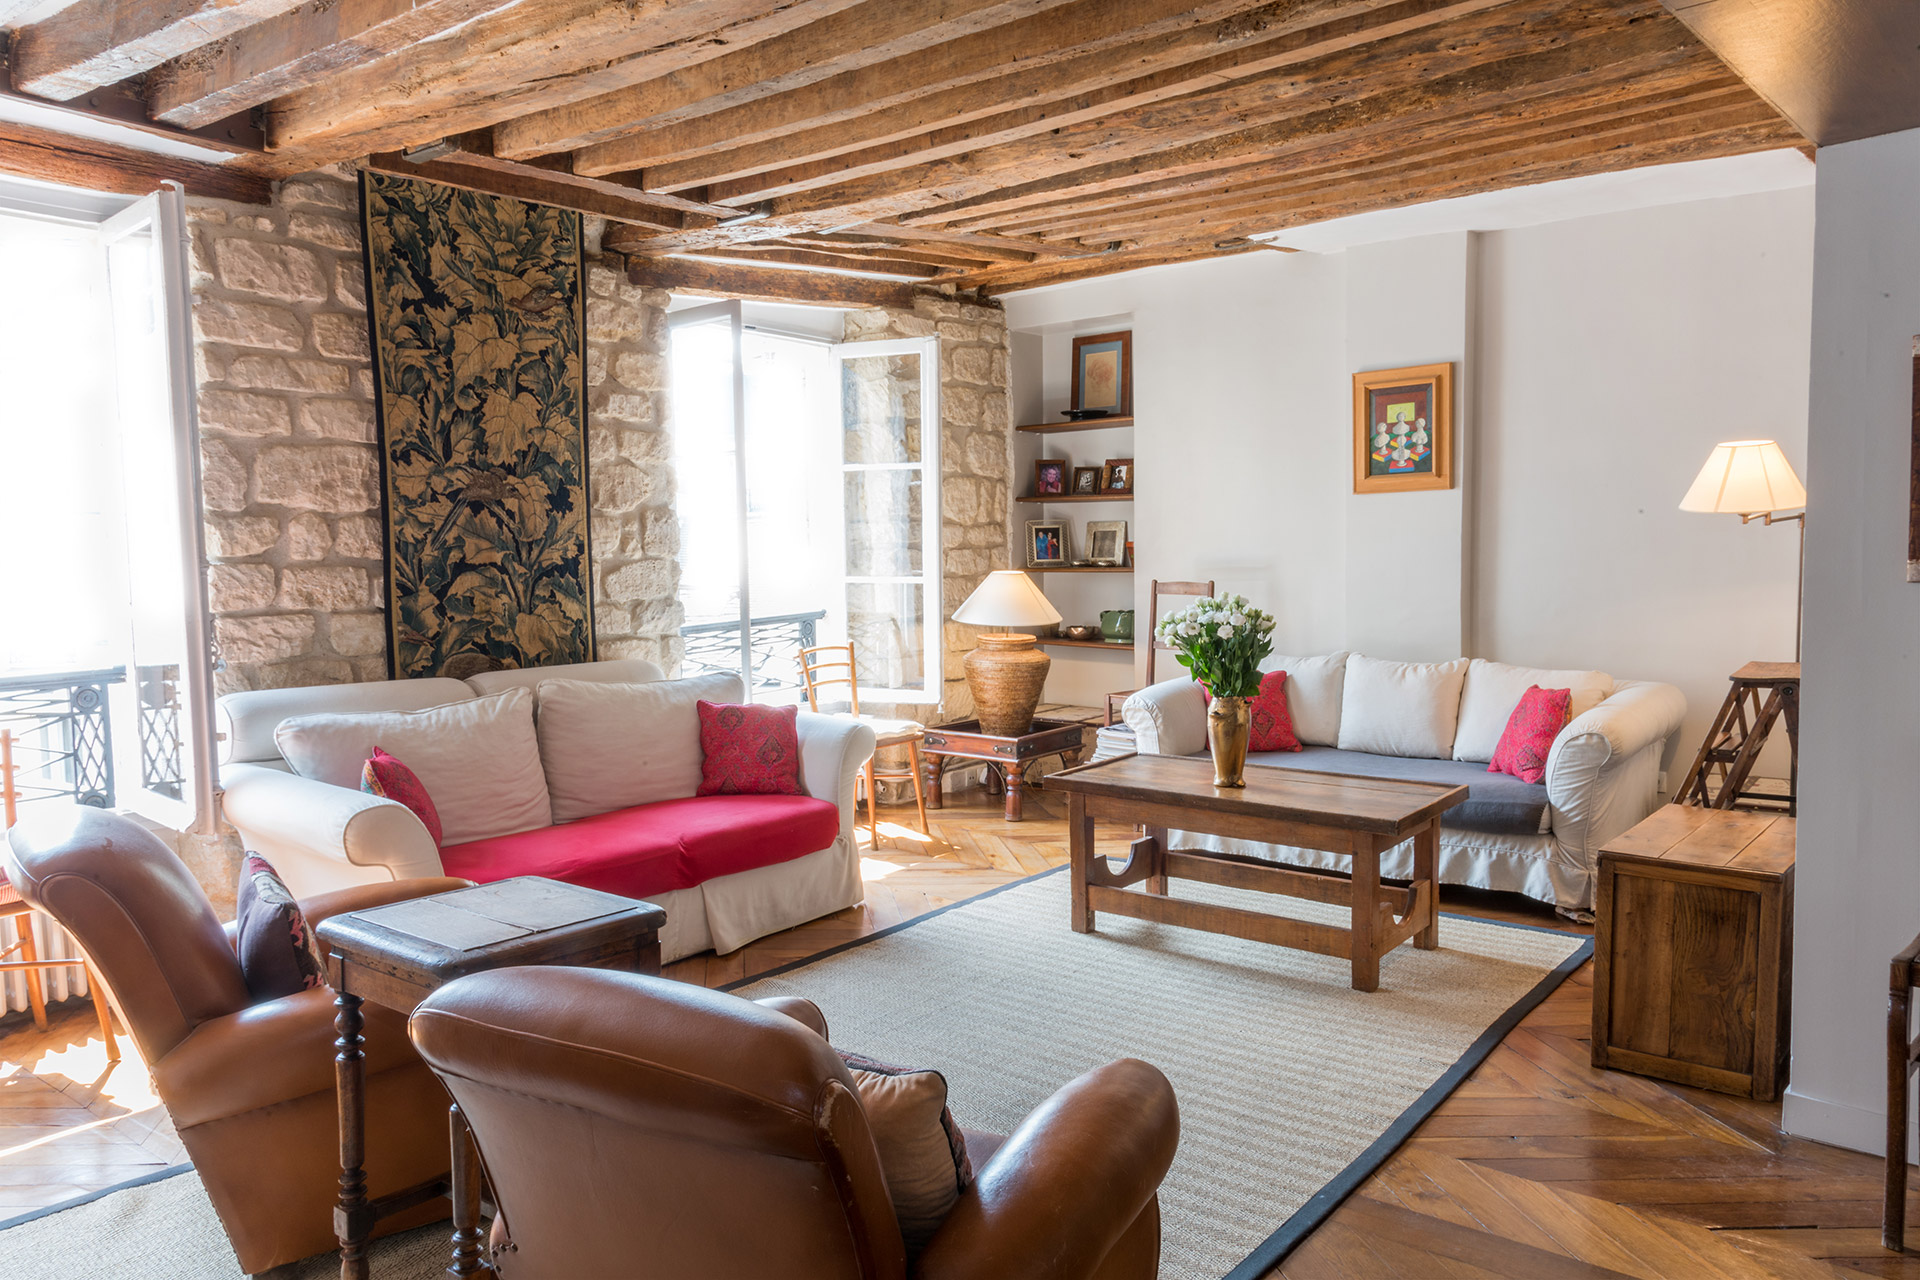 1 Bedroom Paris Rental in Historic Saint Germain